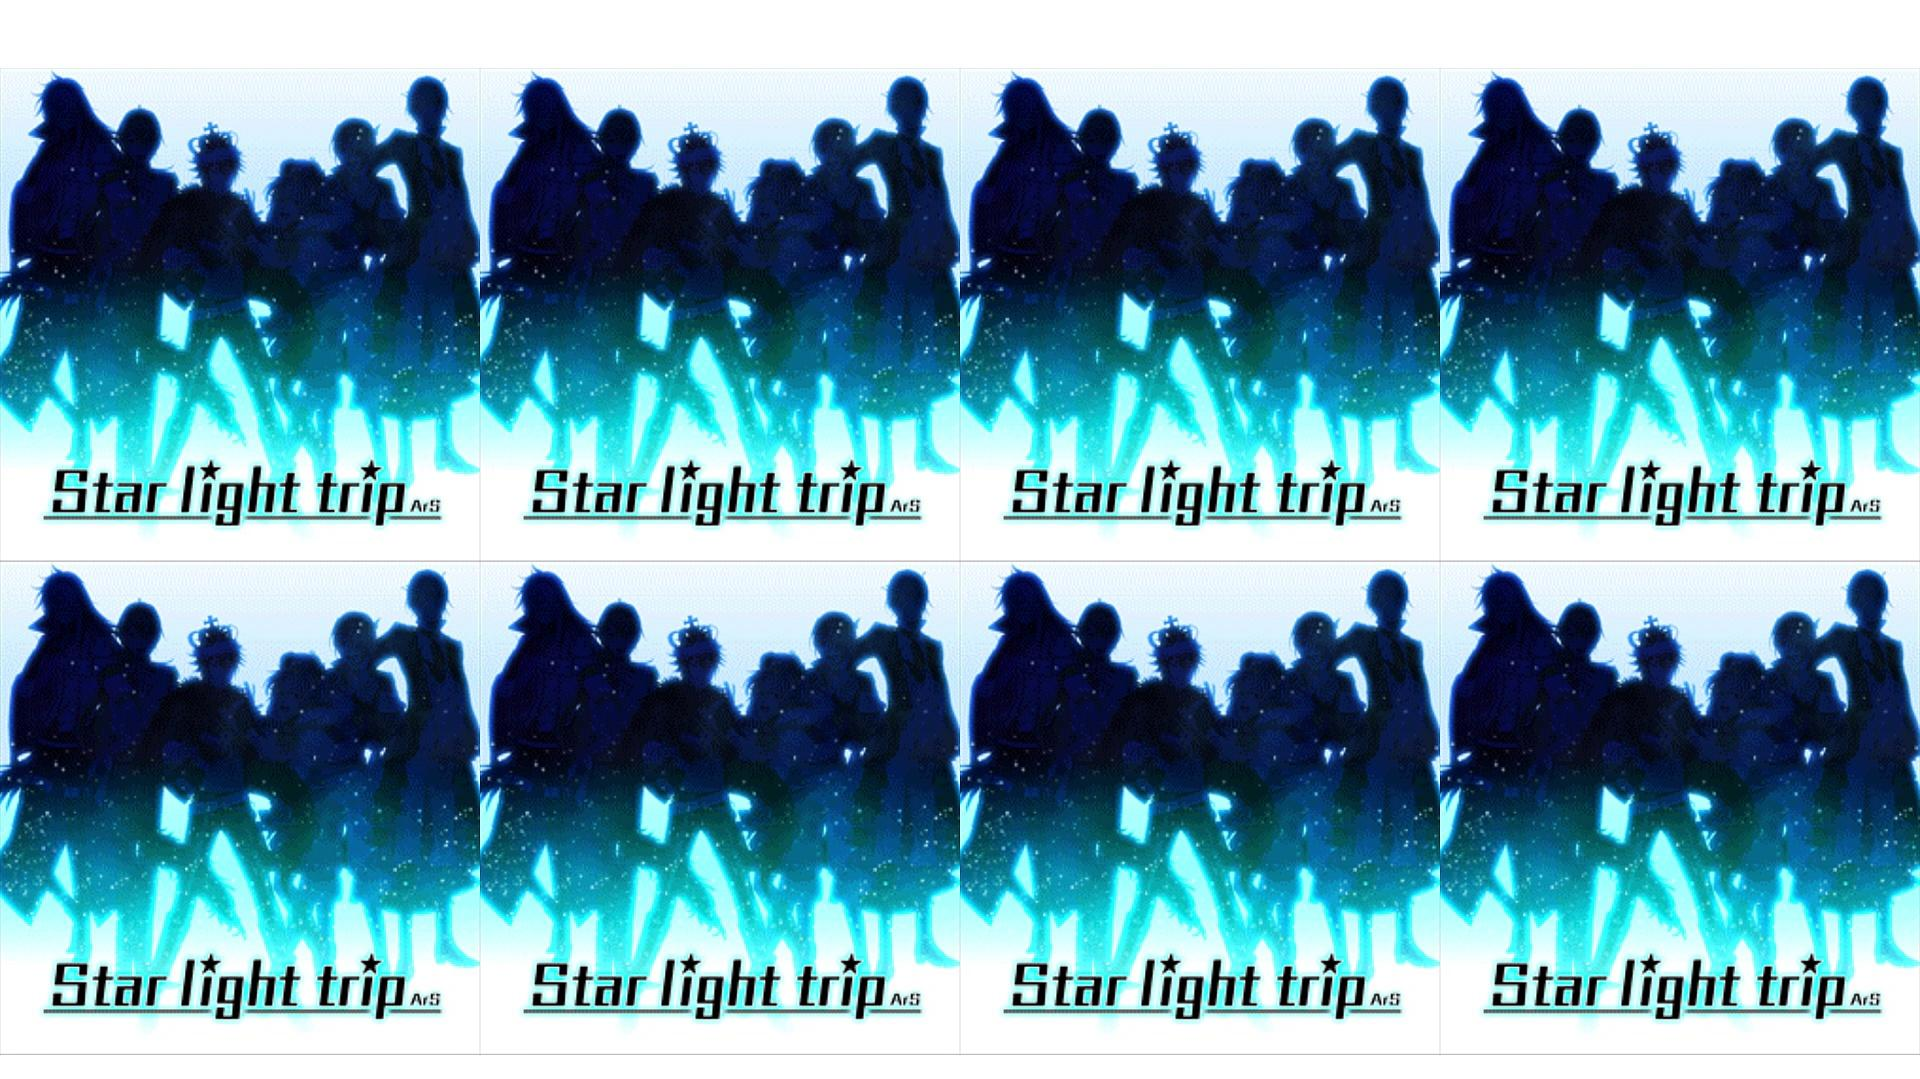 Star Light Trip - ArS